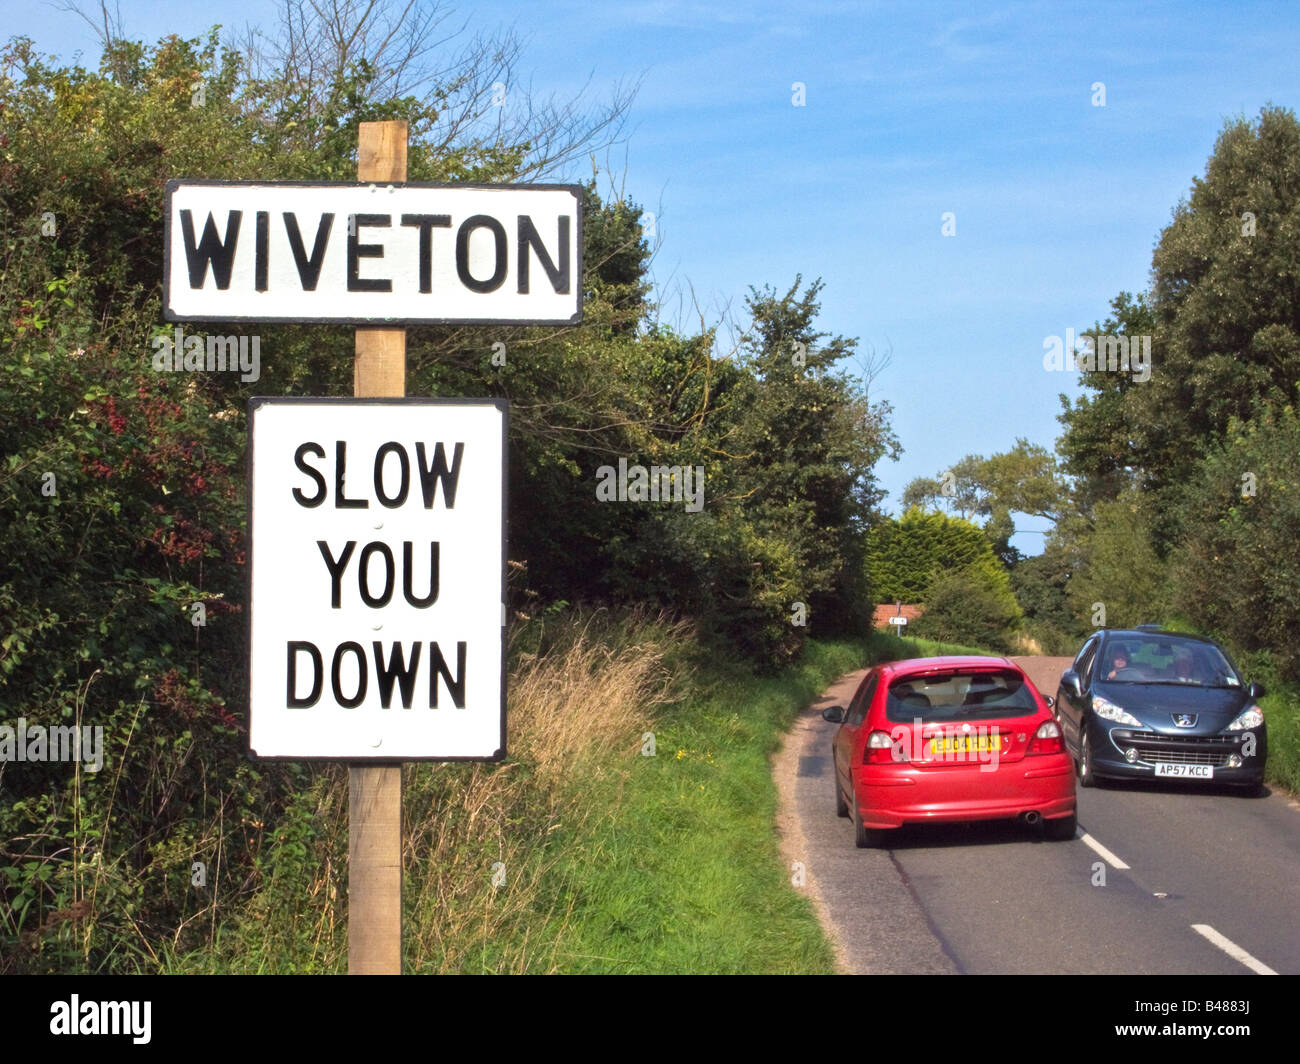 Amusing road sign SLOW YOU DOWN in Wiveton Norfolk East Anglia England UK EU - Stock Image